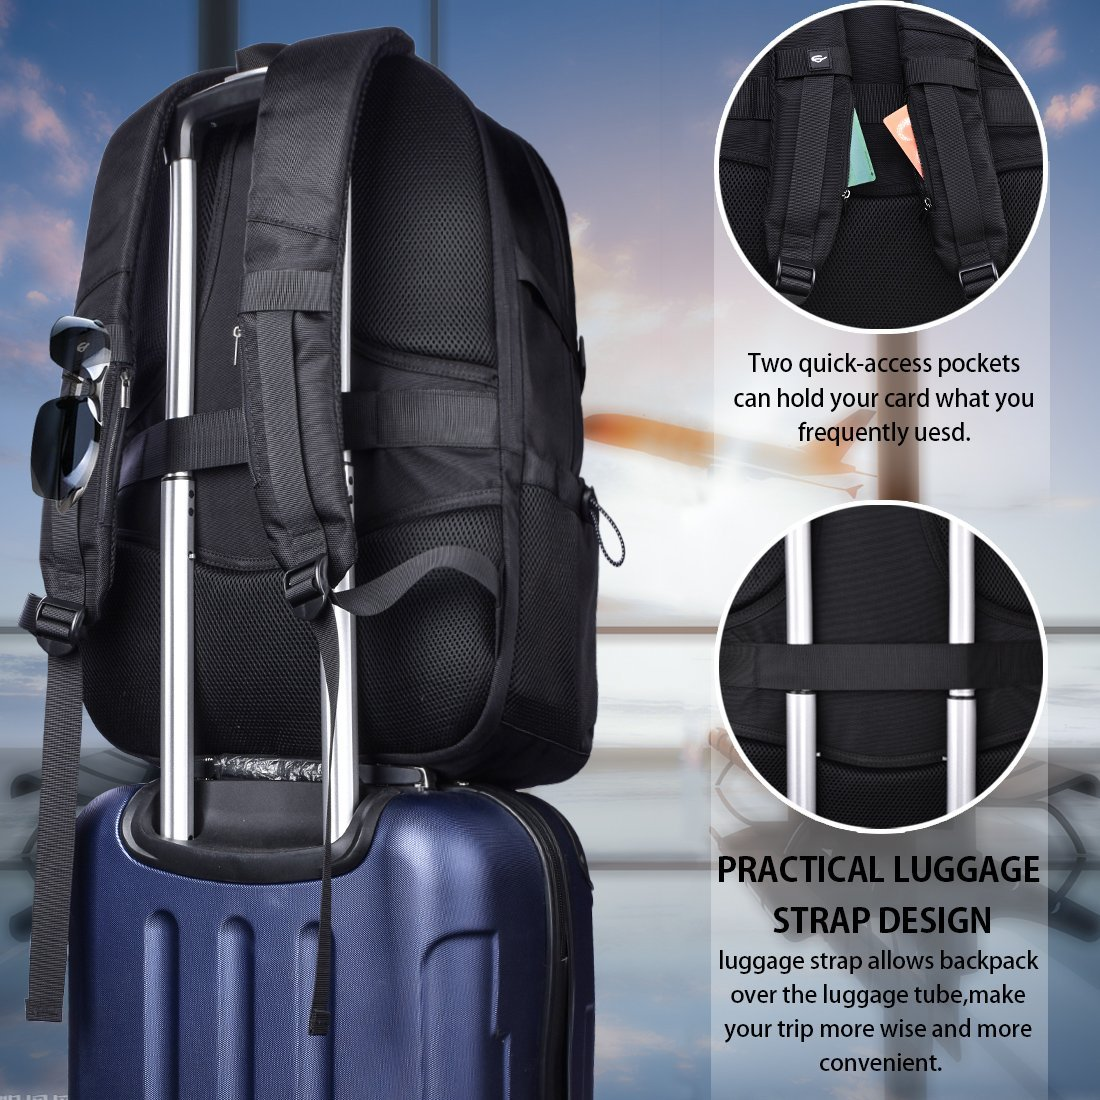 Laptop Backpack 17.3 Inch Travel Anti-theft Waterproof School Backpack Business College Large Capacity Gaming Laptop Backpacks USB Charging Port for Men Women Black by NEWHEY (Image #4)